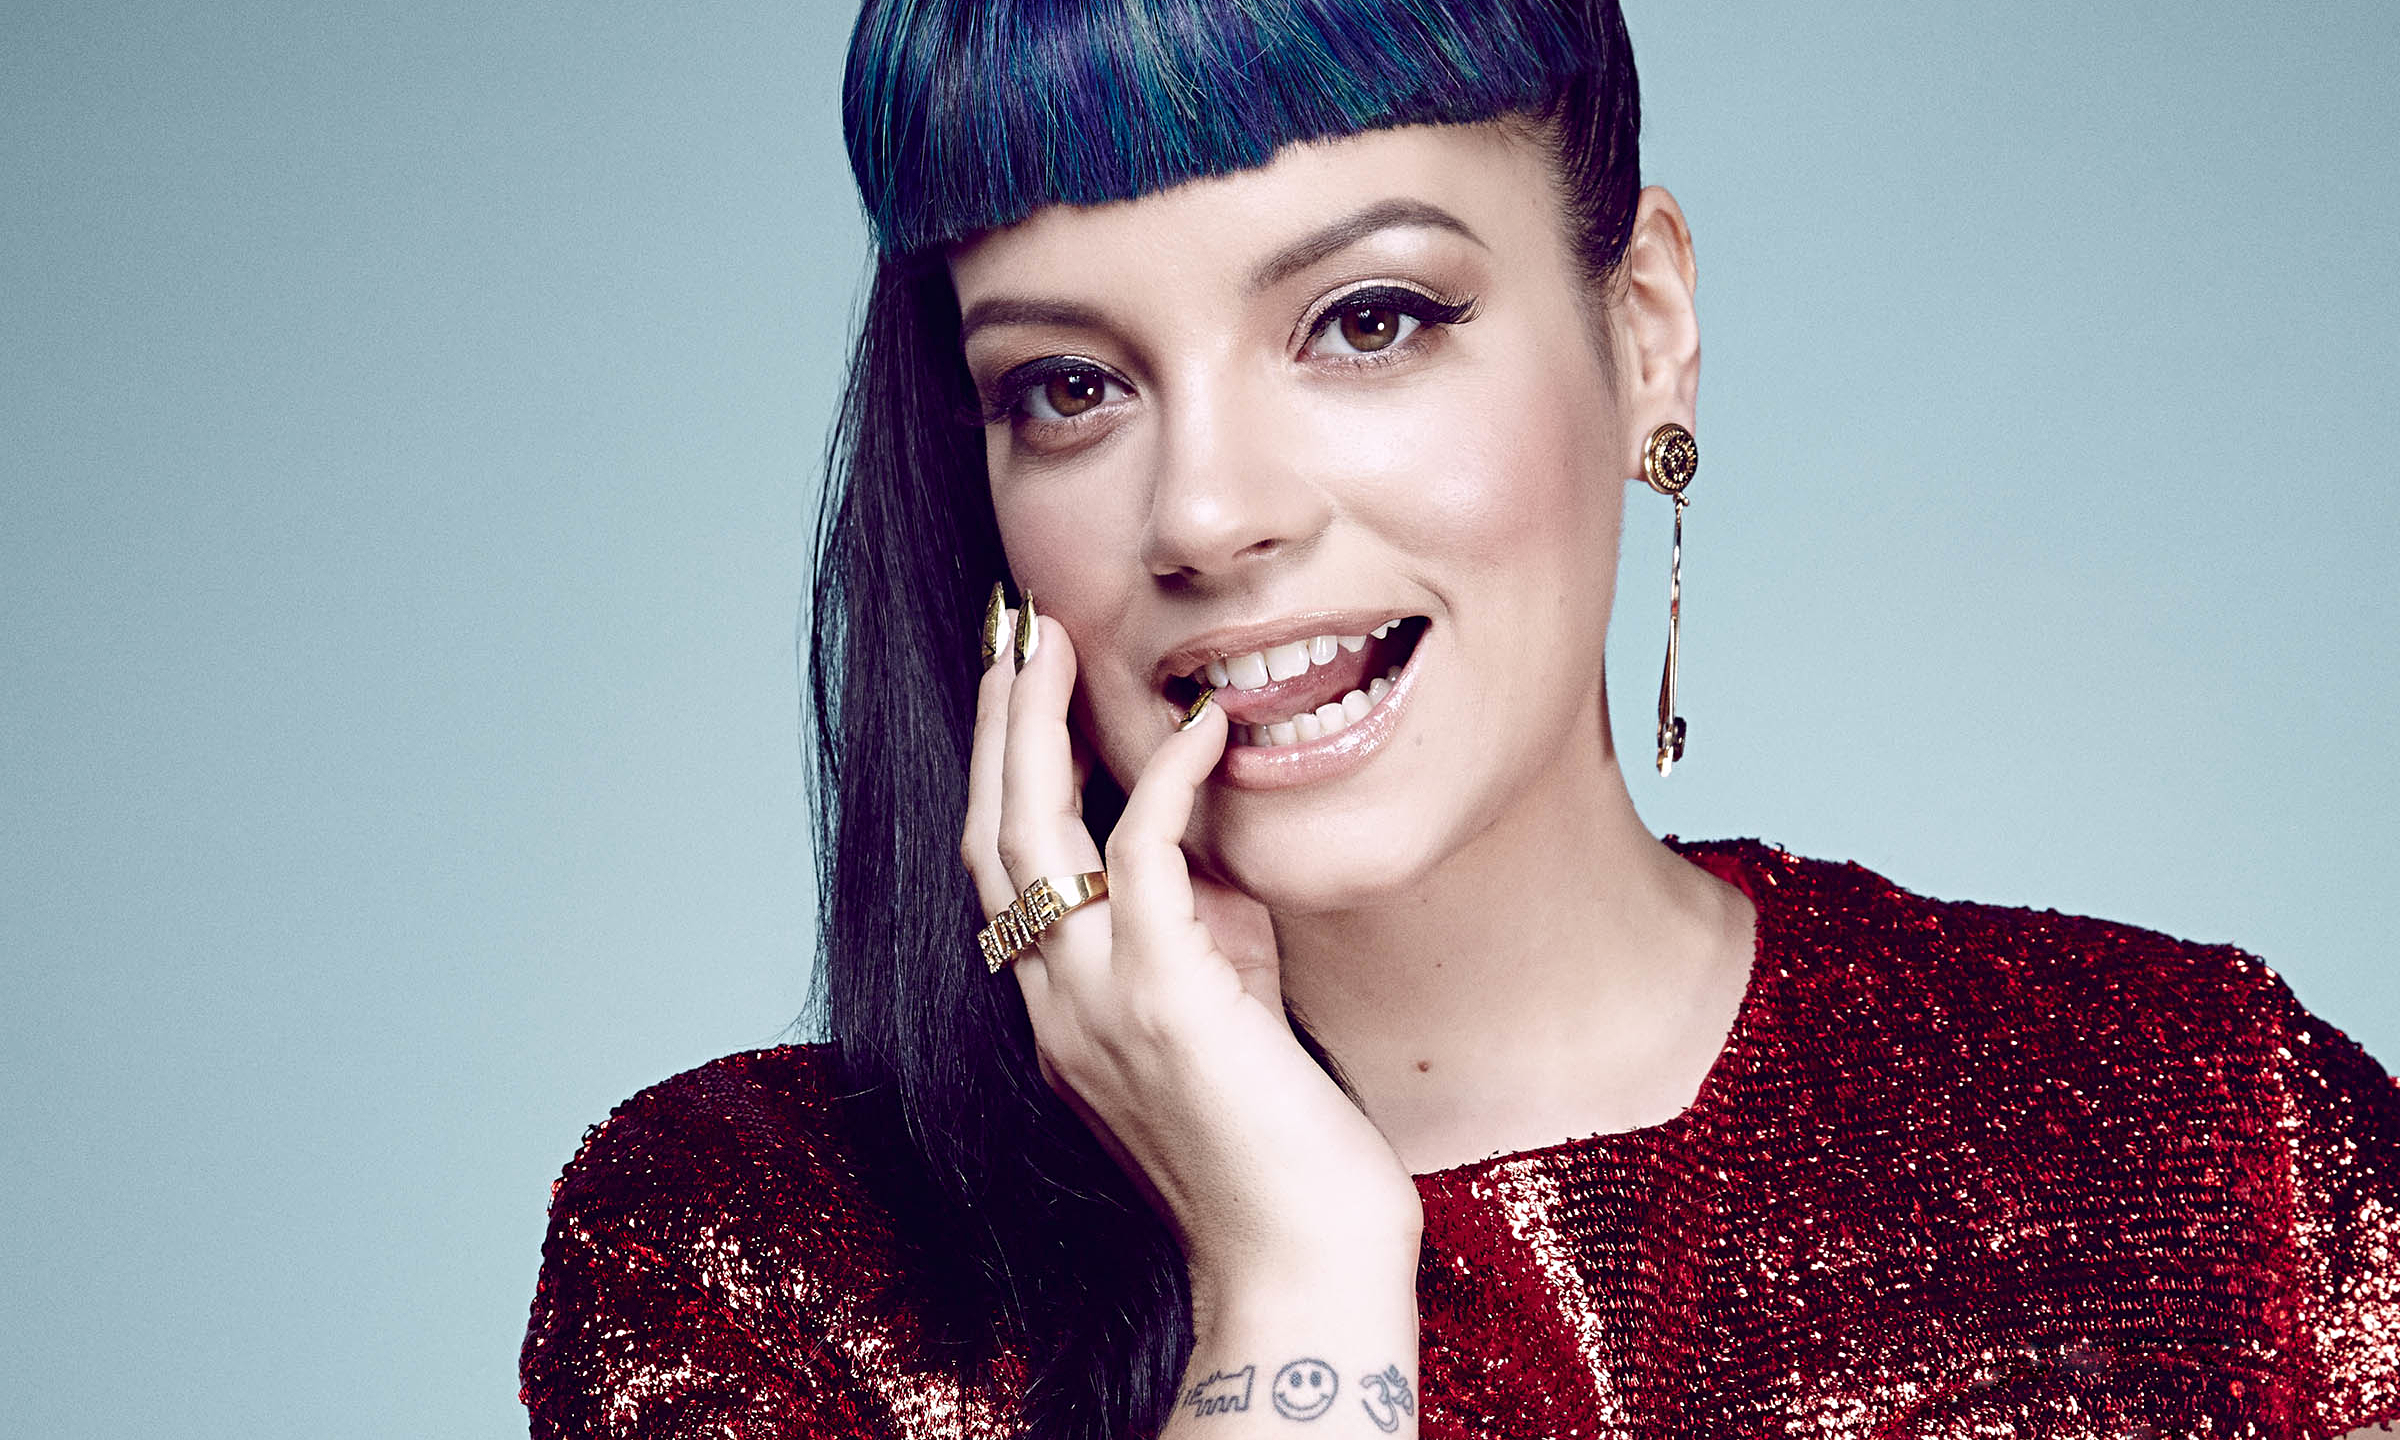 Lily Allen Backgrounds on Wallpapers Vista